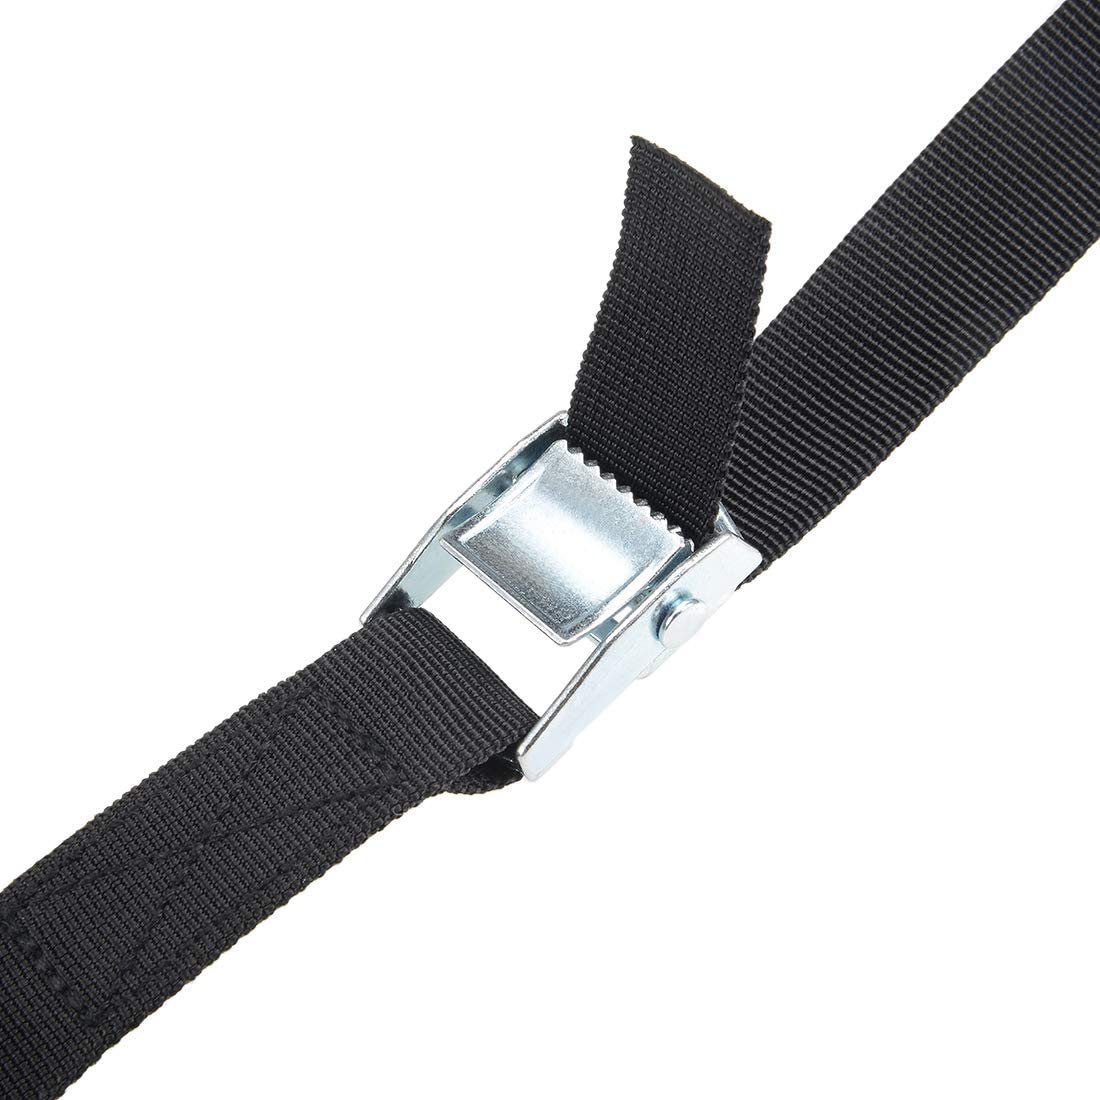 Lashing Strap 29.5-Foot 1-Inch Cargo Tie Down Straps with Cam Lock Buckle Up to 250Kg Black